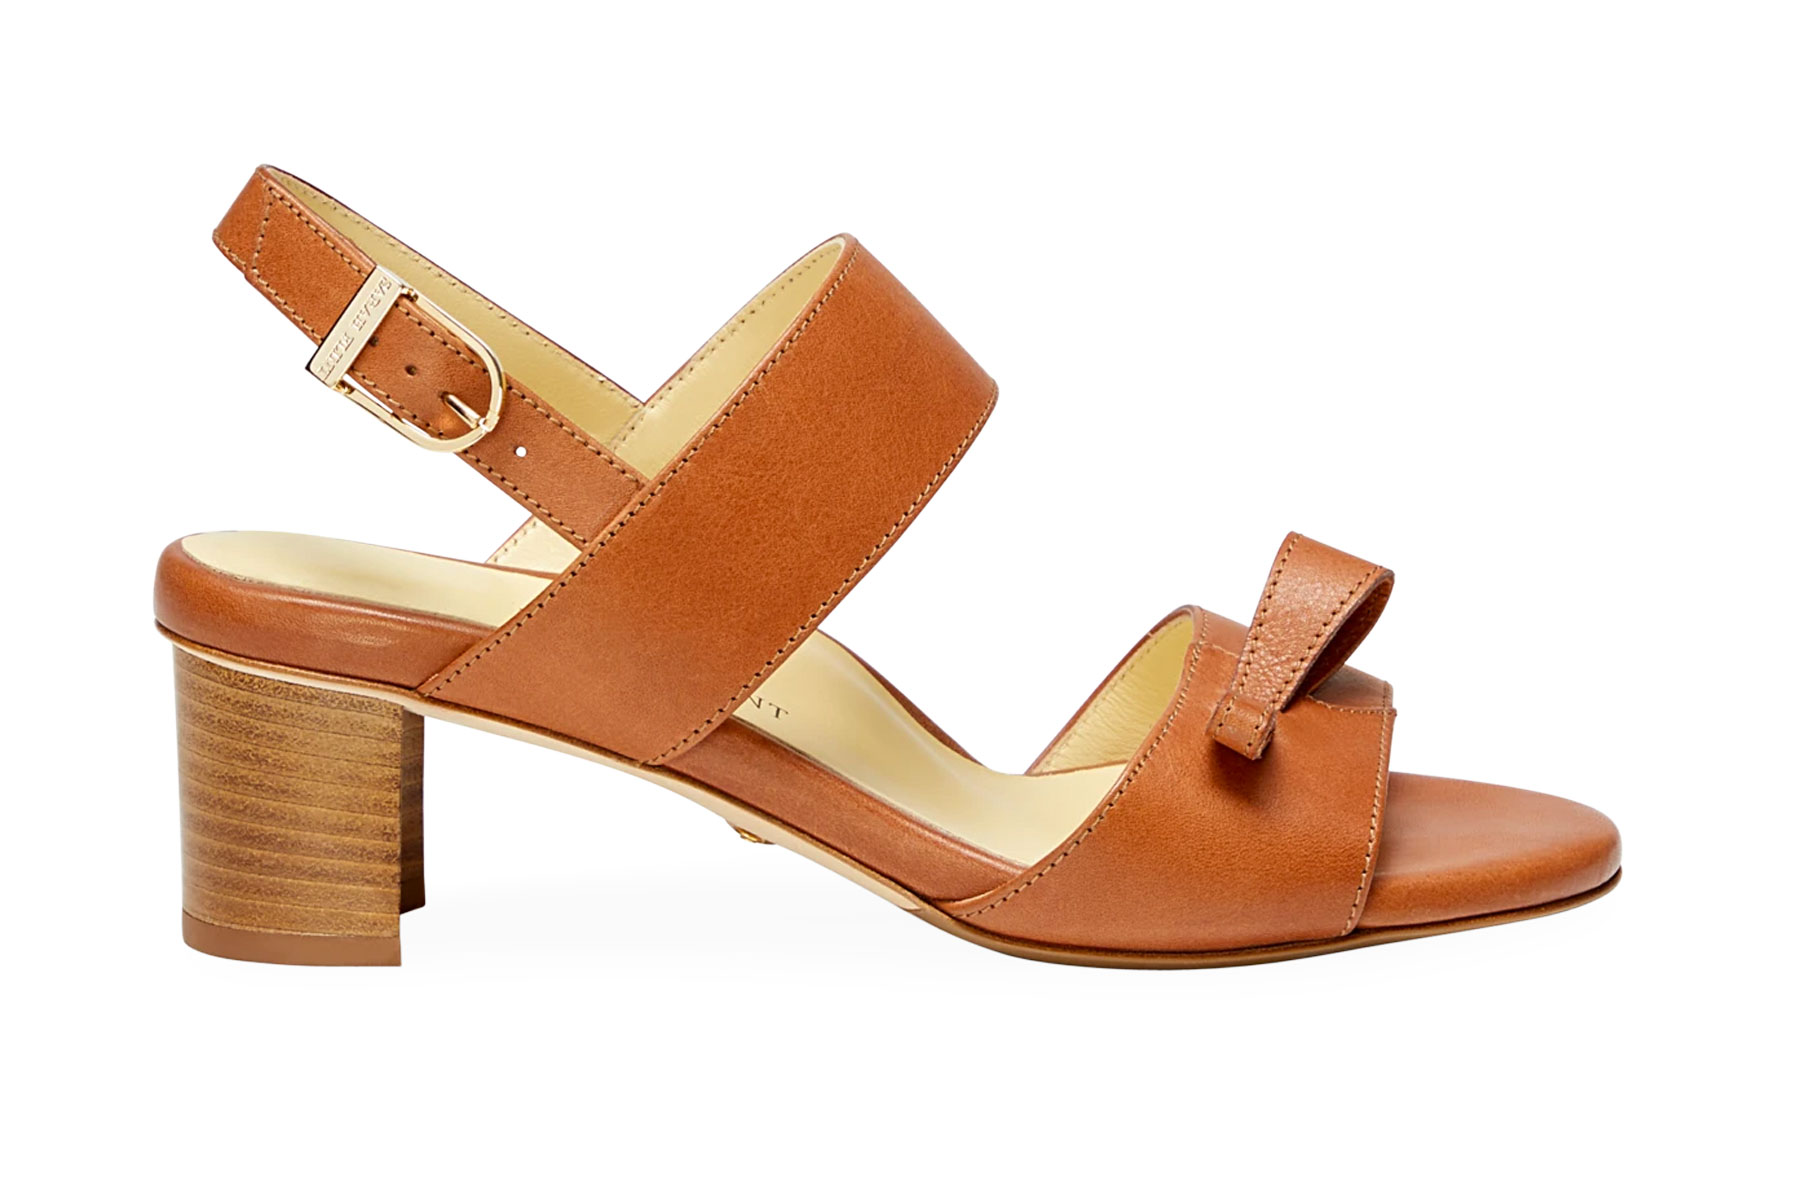 Brown leather heeled sandals